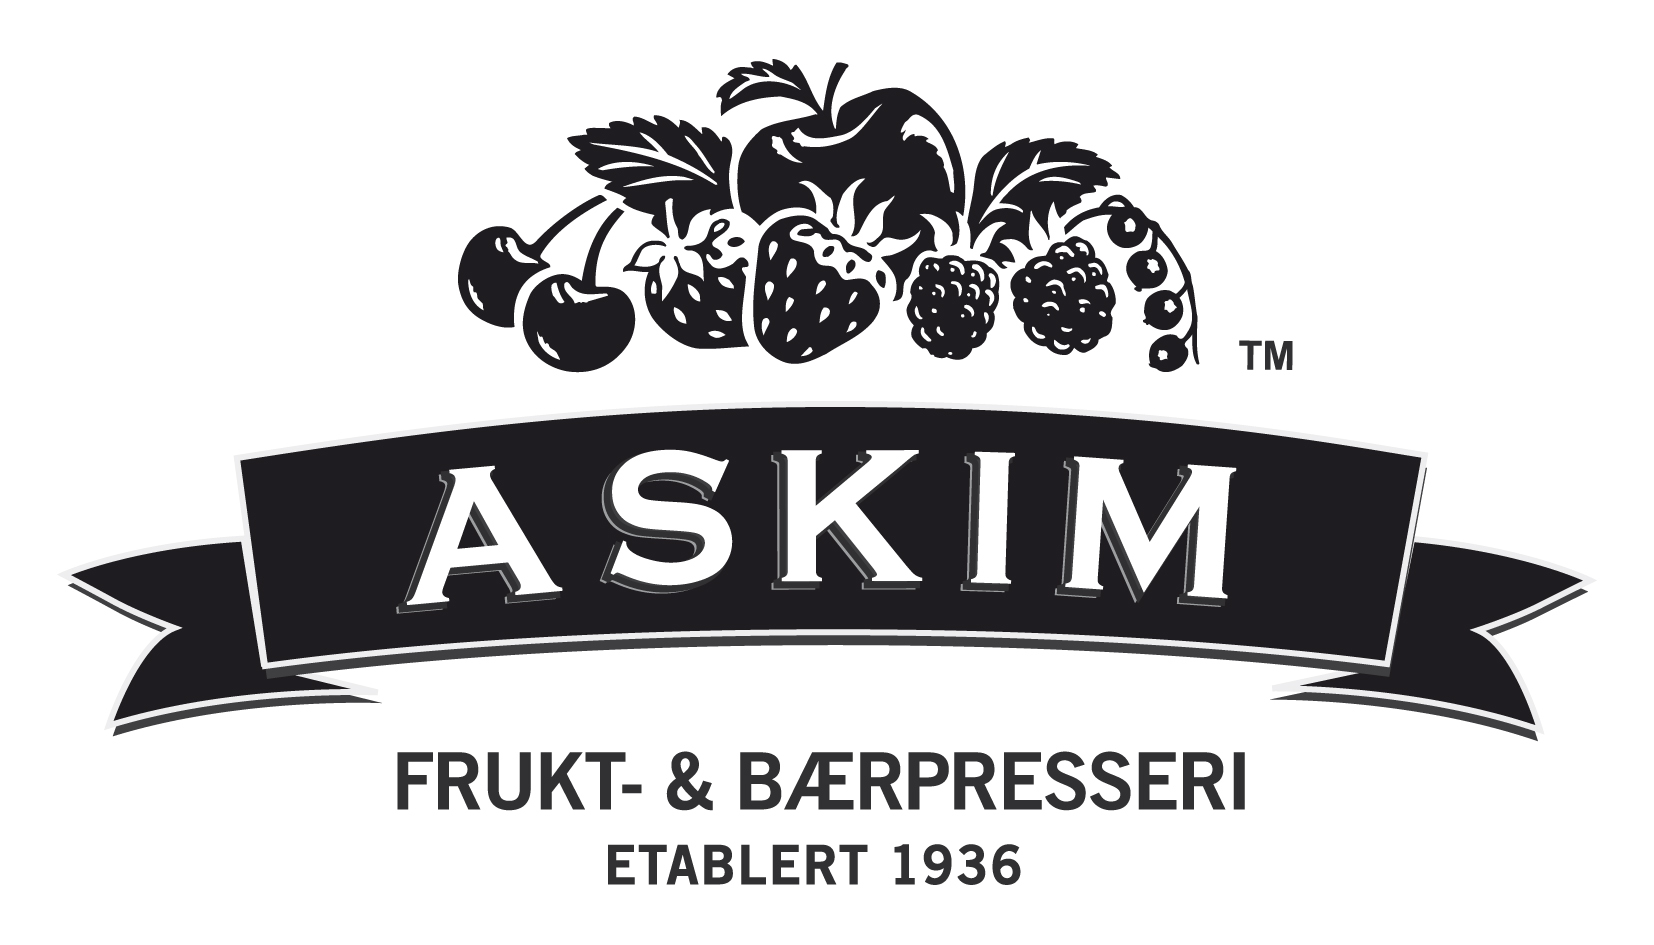 ASKIM FRUKT- OG BÆRPRESSERI AS